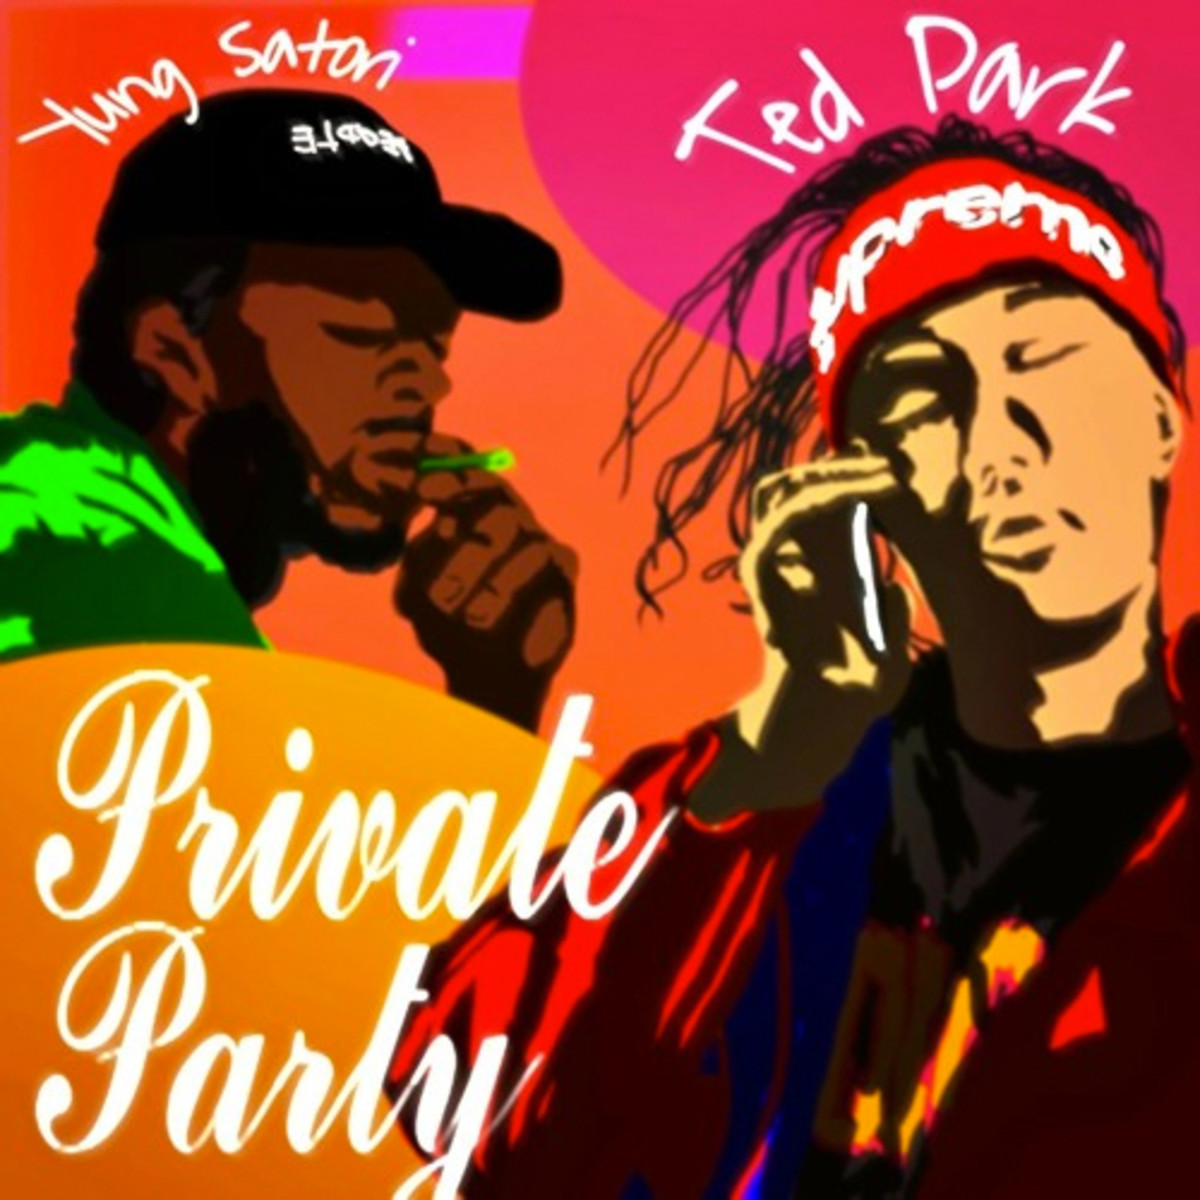 ted-park-private-party.jpg